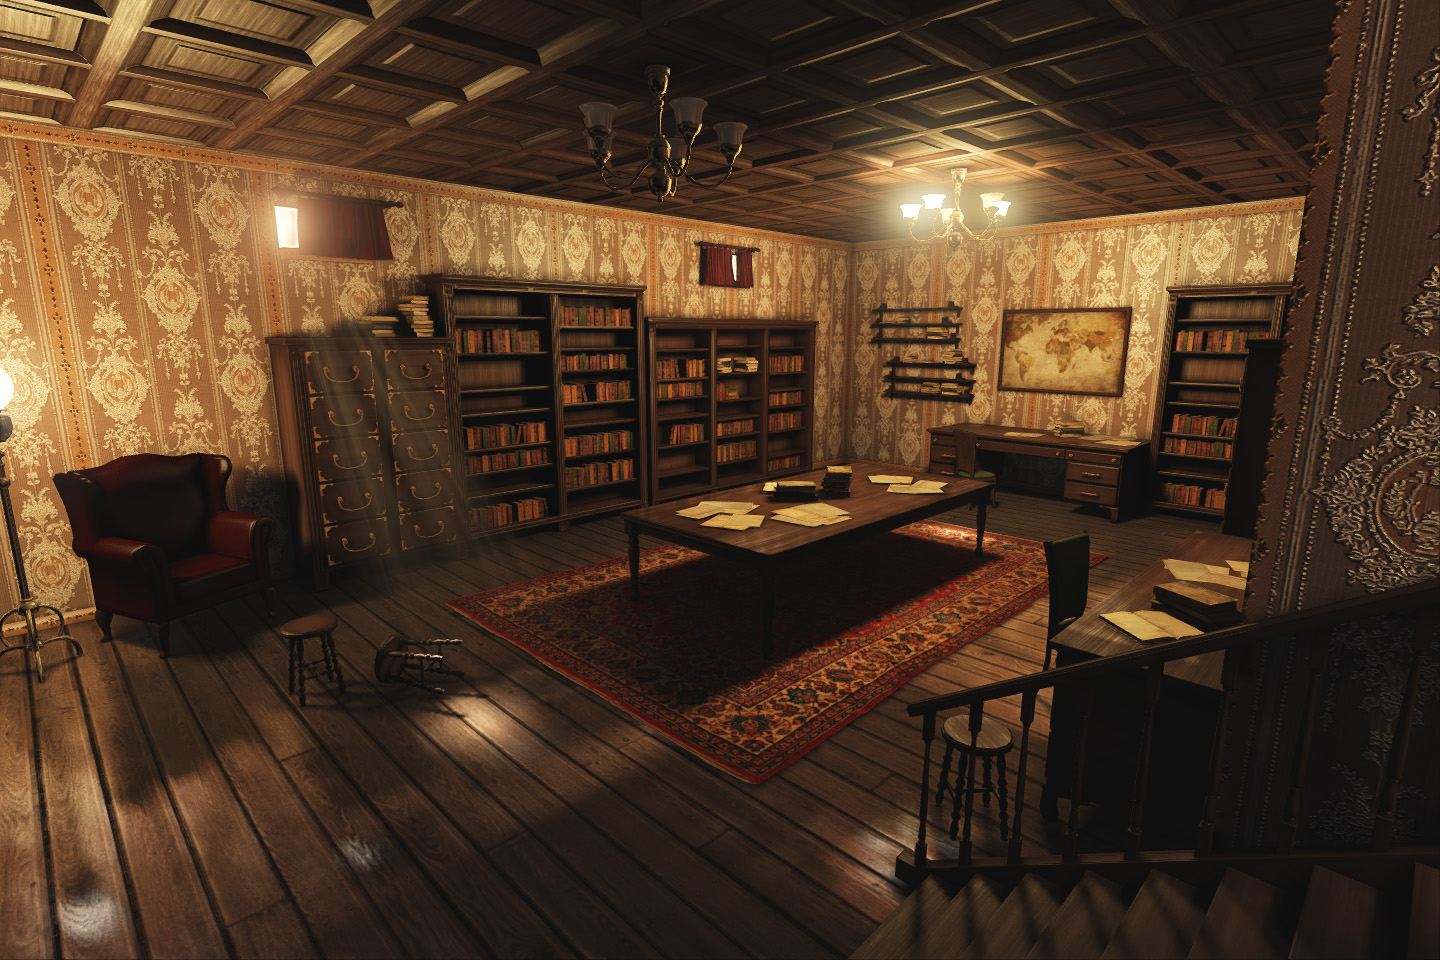 3D Modeling & Texturing: [UDK] Studies Room / Library